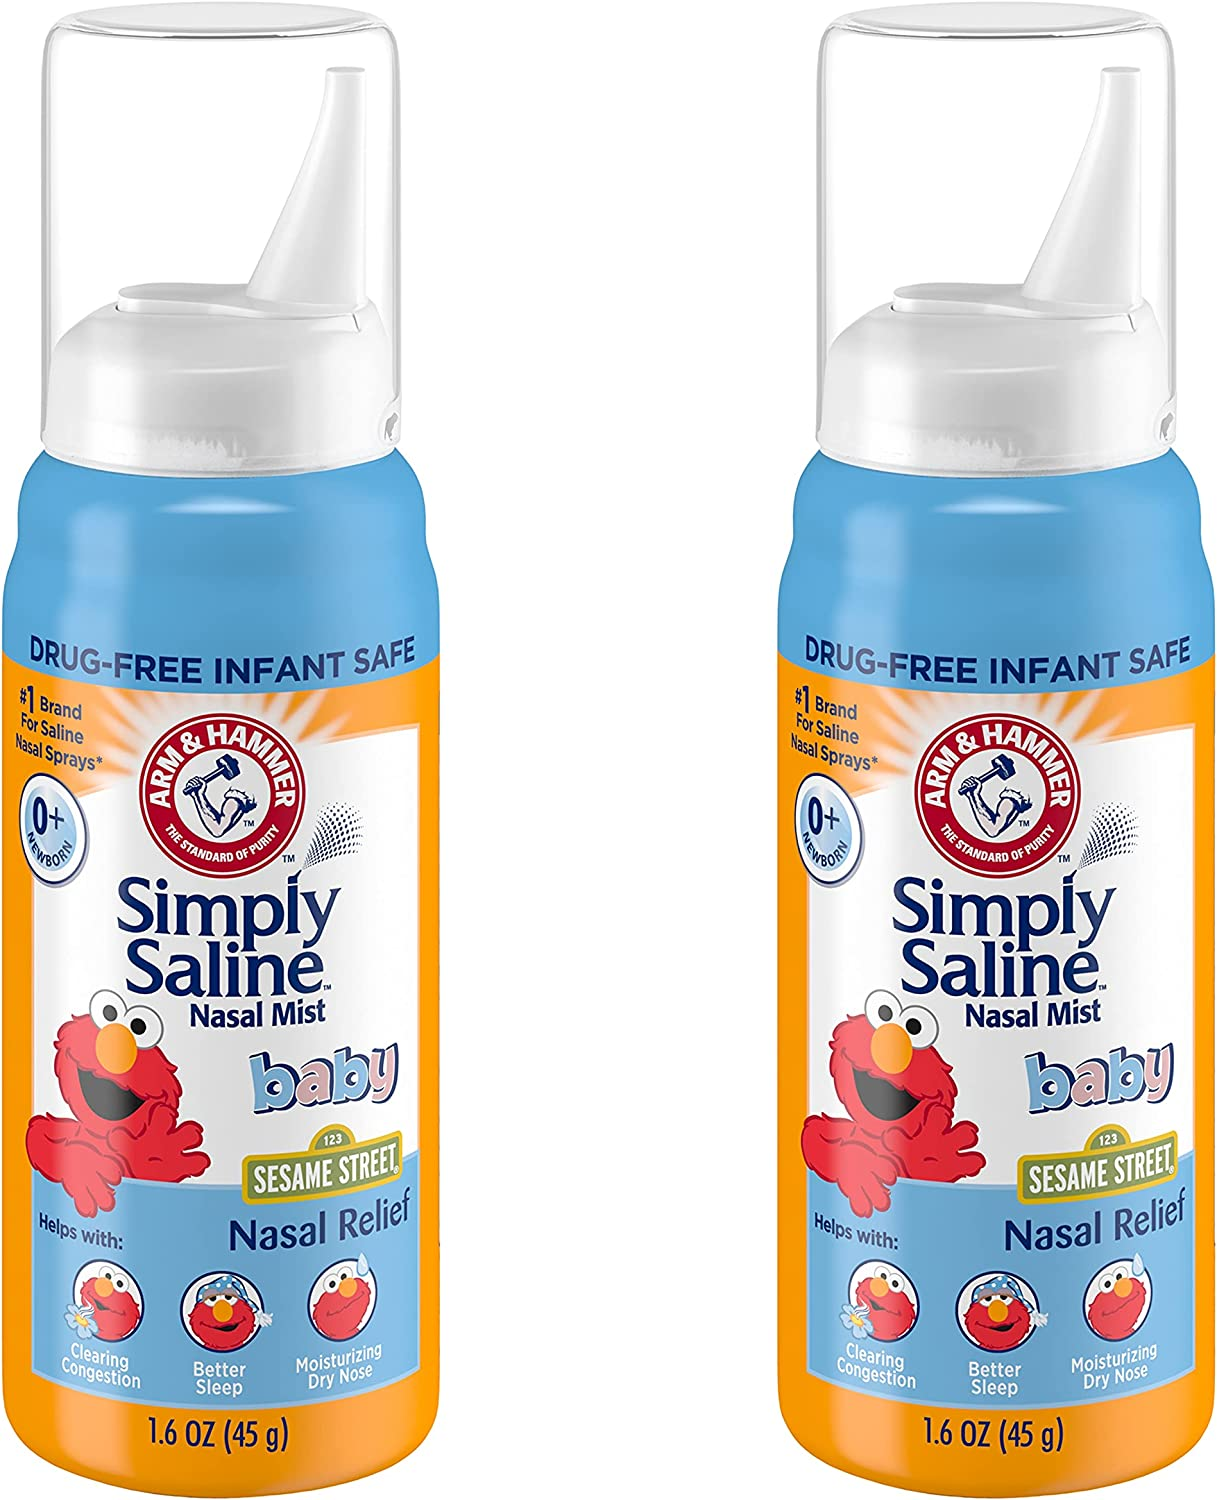 Simply Saline Sterile Nasal Mist Baby oz ml 1.6 44 Our shop OFFers OFFicial store the best service fl